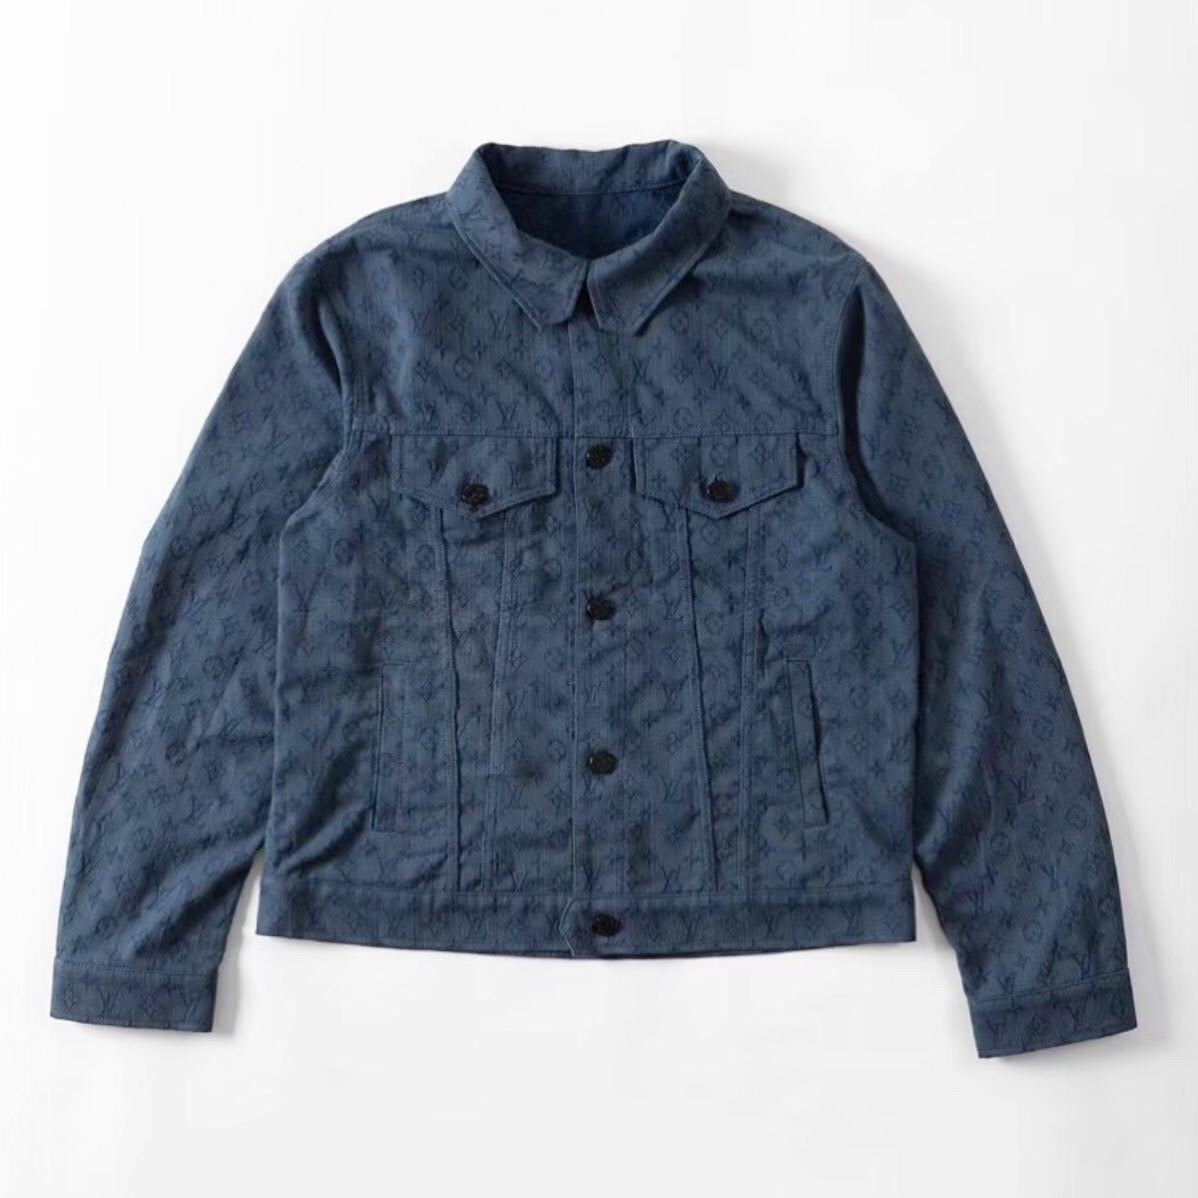 Louis Vuitton 19FW Denim Jacket -Premium-